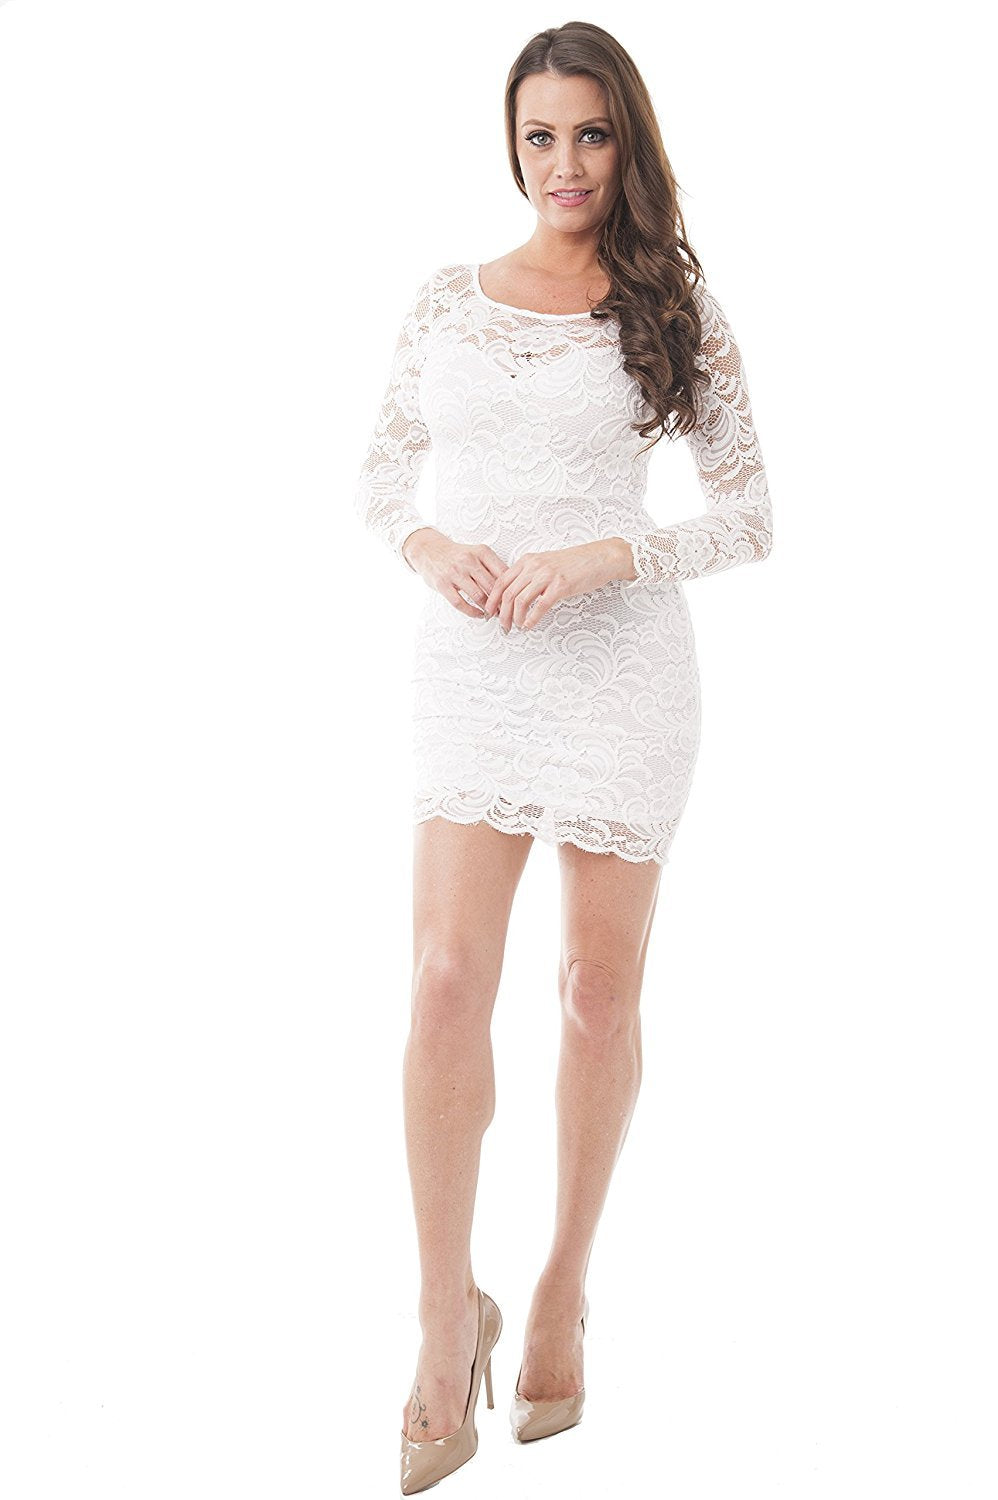 Khanomak Women's Floral Lace Long Sleeve Bodycon Cocktail Party Fitted Dresses